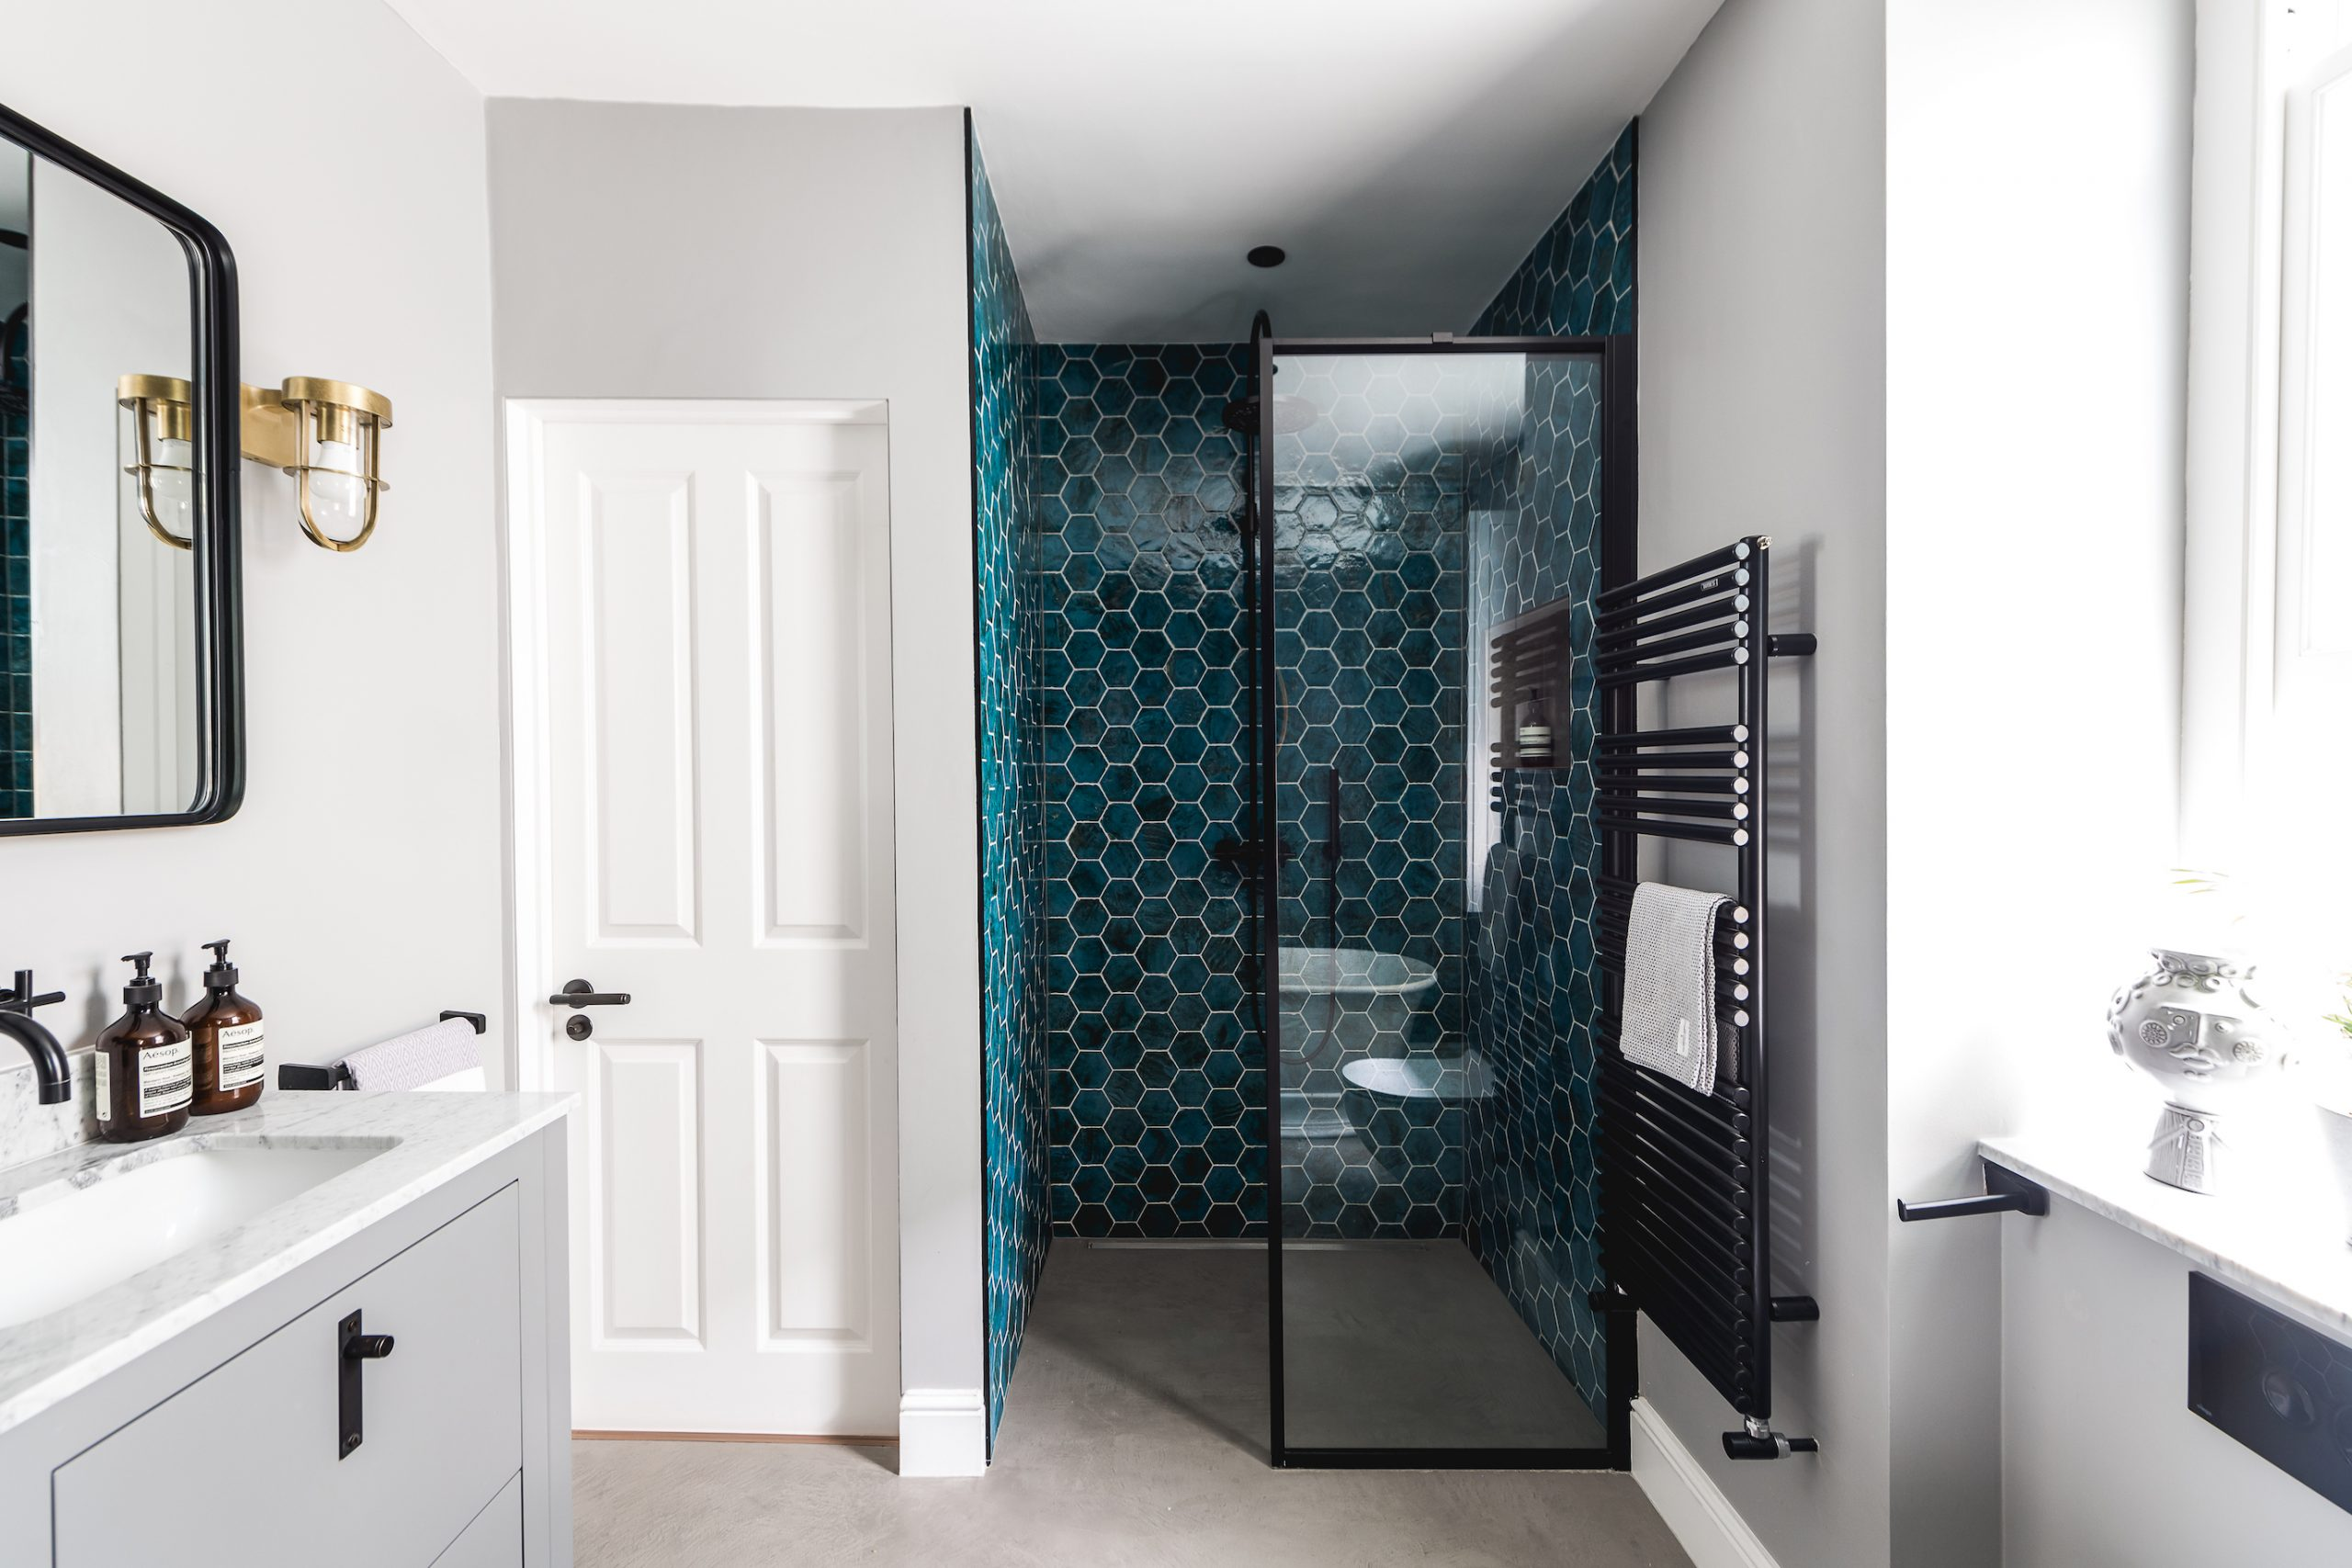 Shower room ideas. Day True